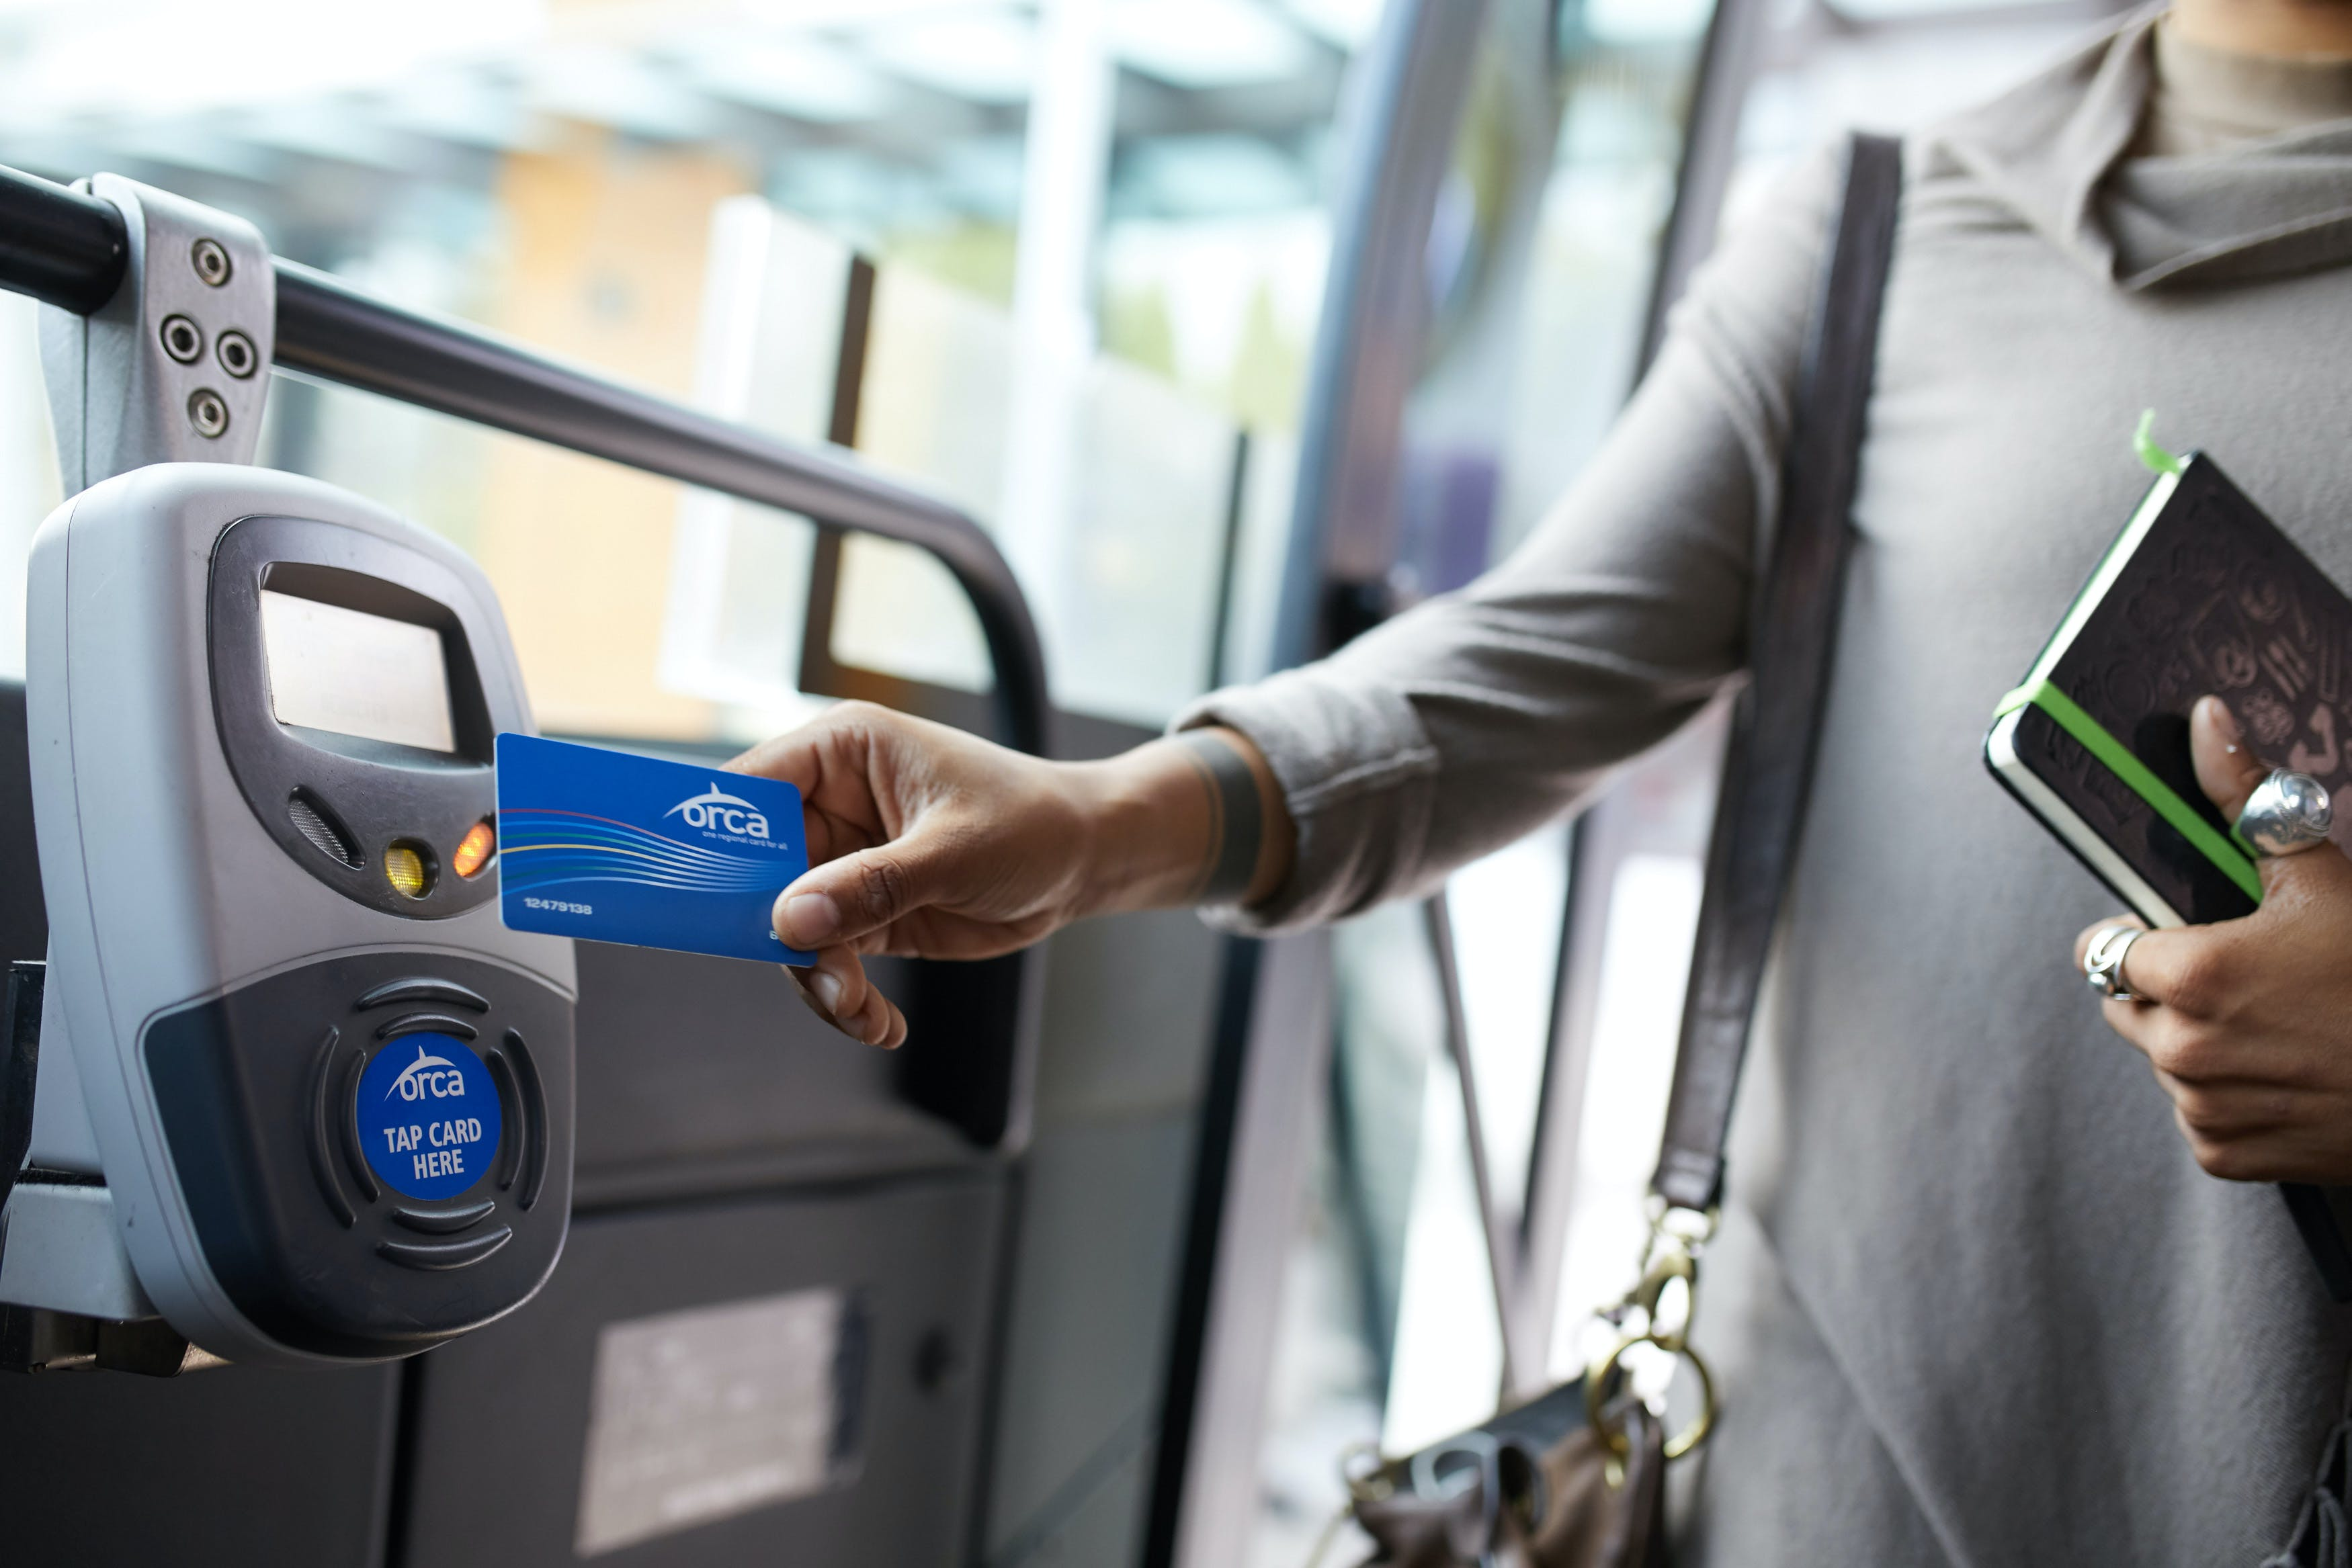 Tap ORCA card